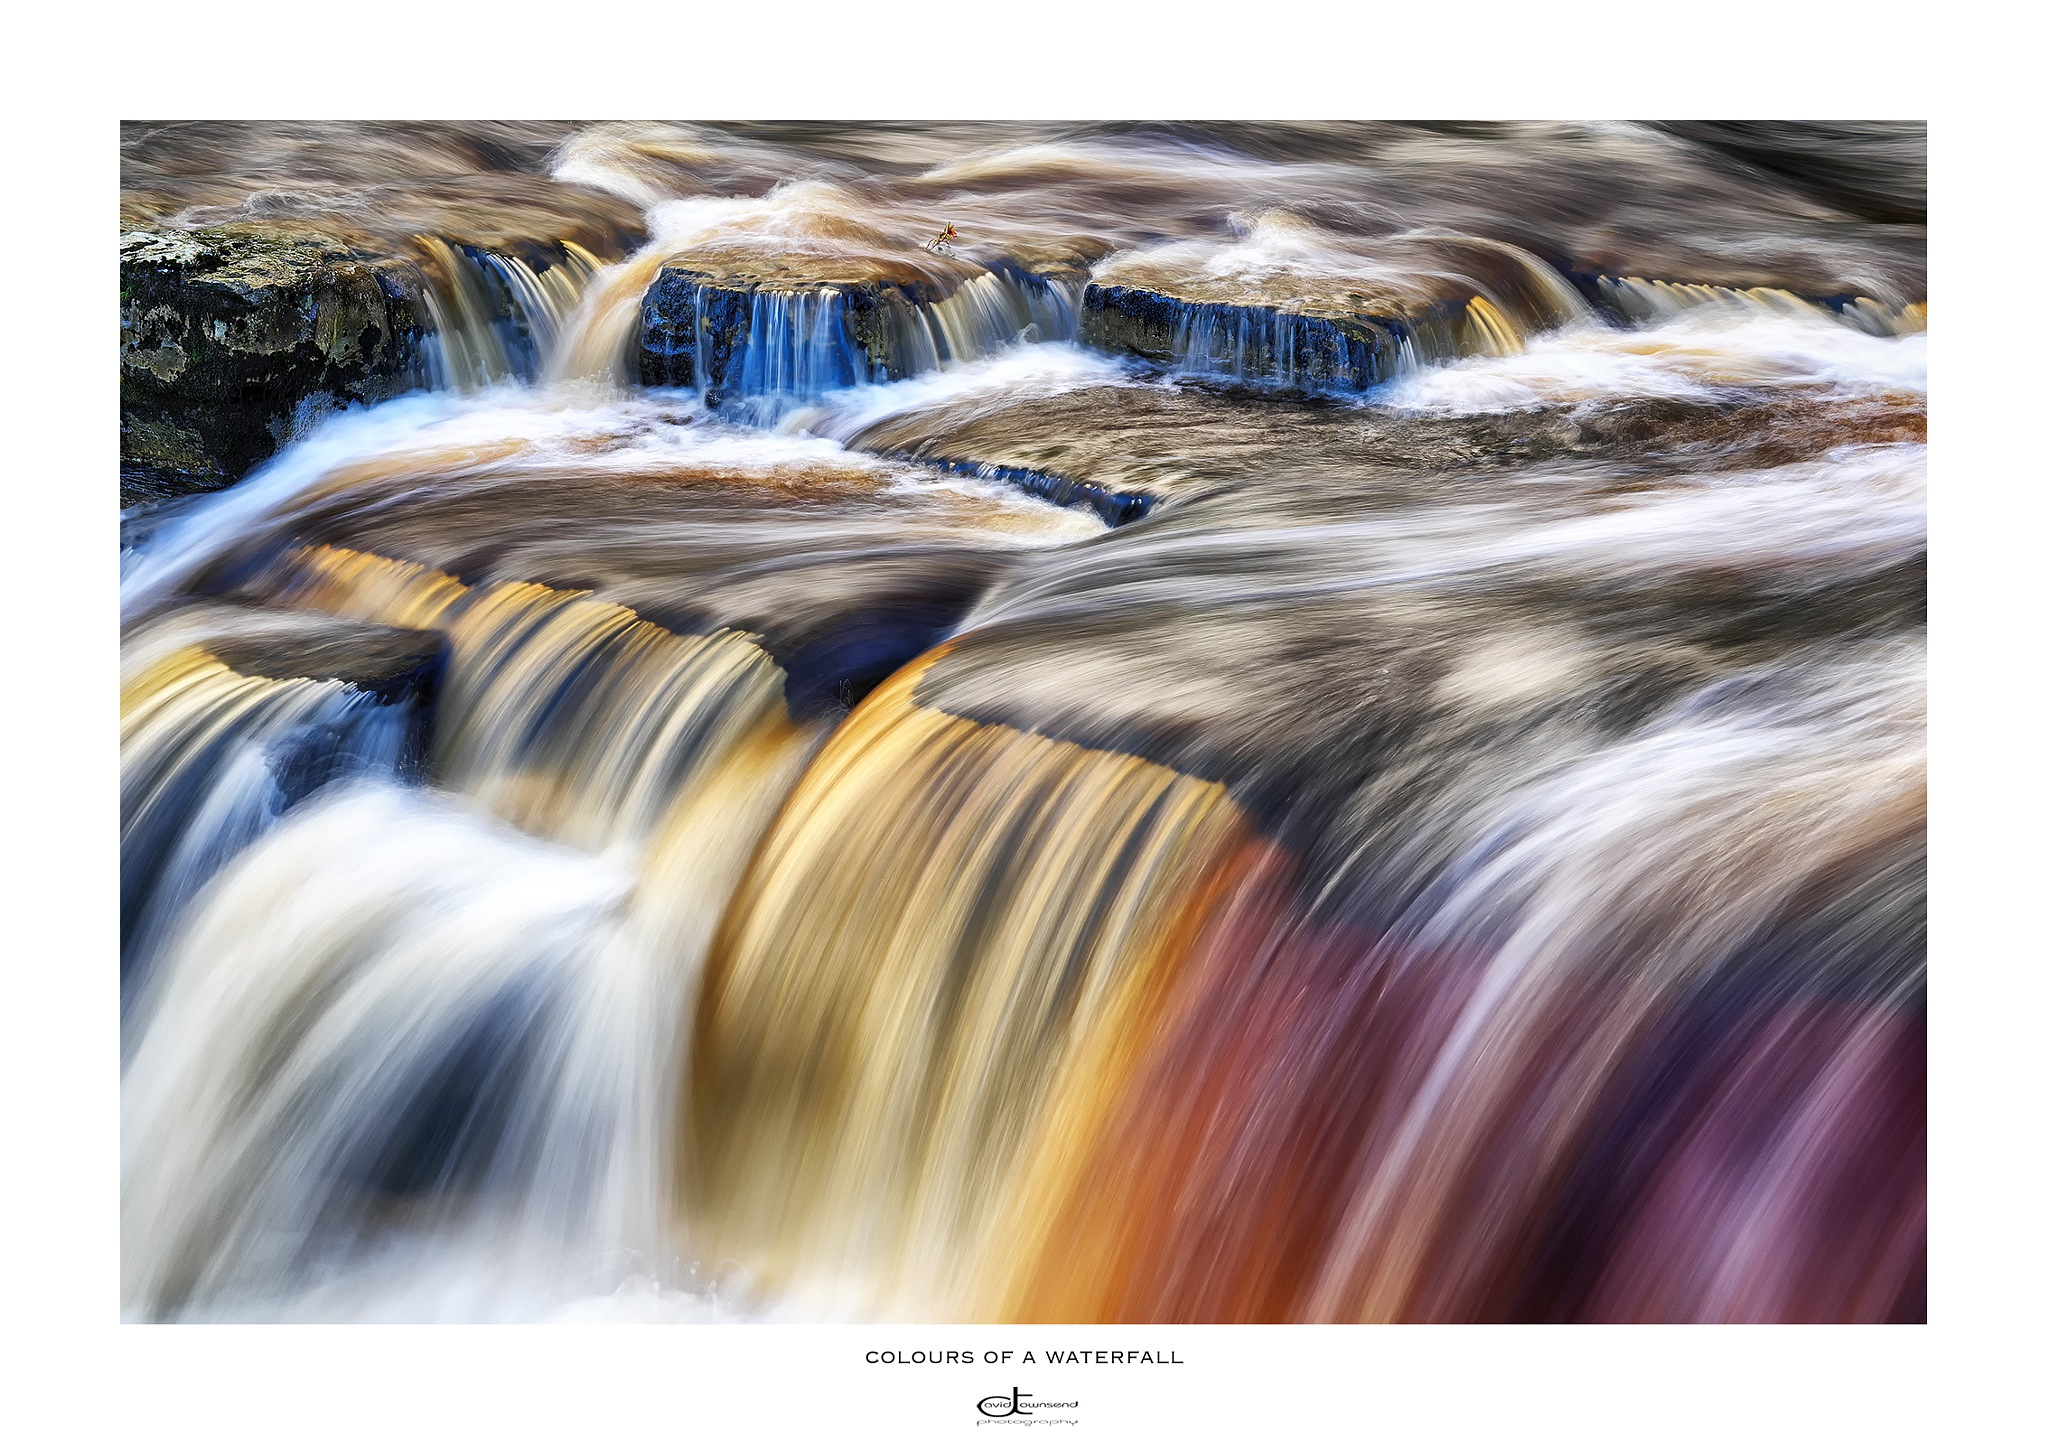 Colours of a Waterfall  by David Townsend